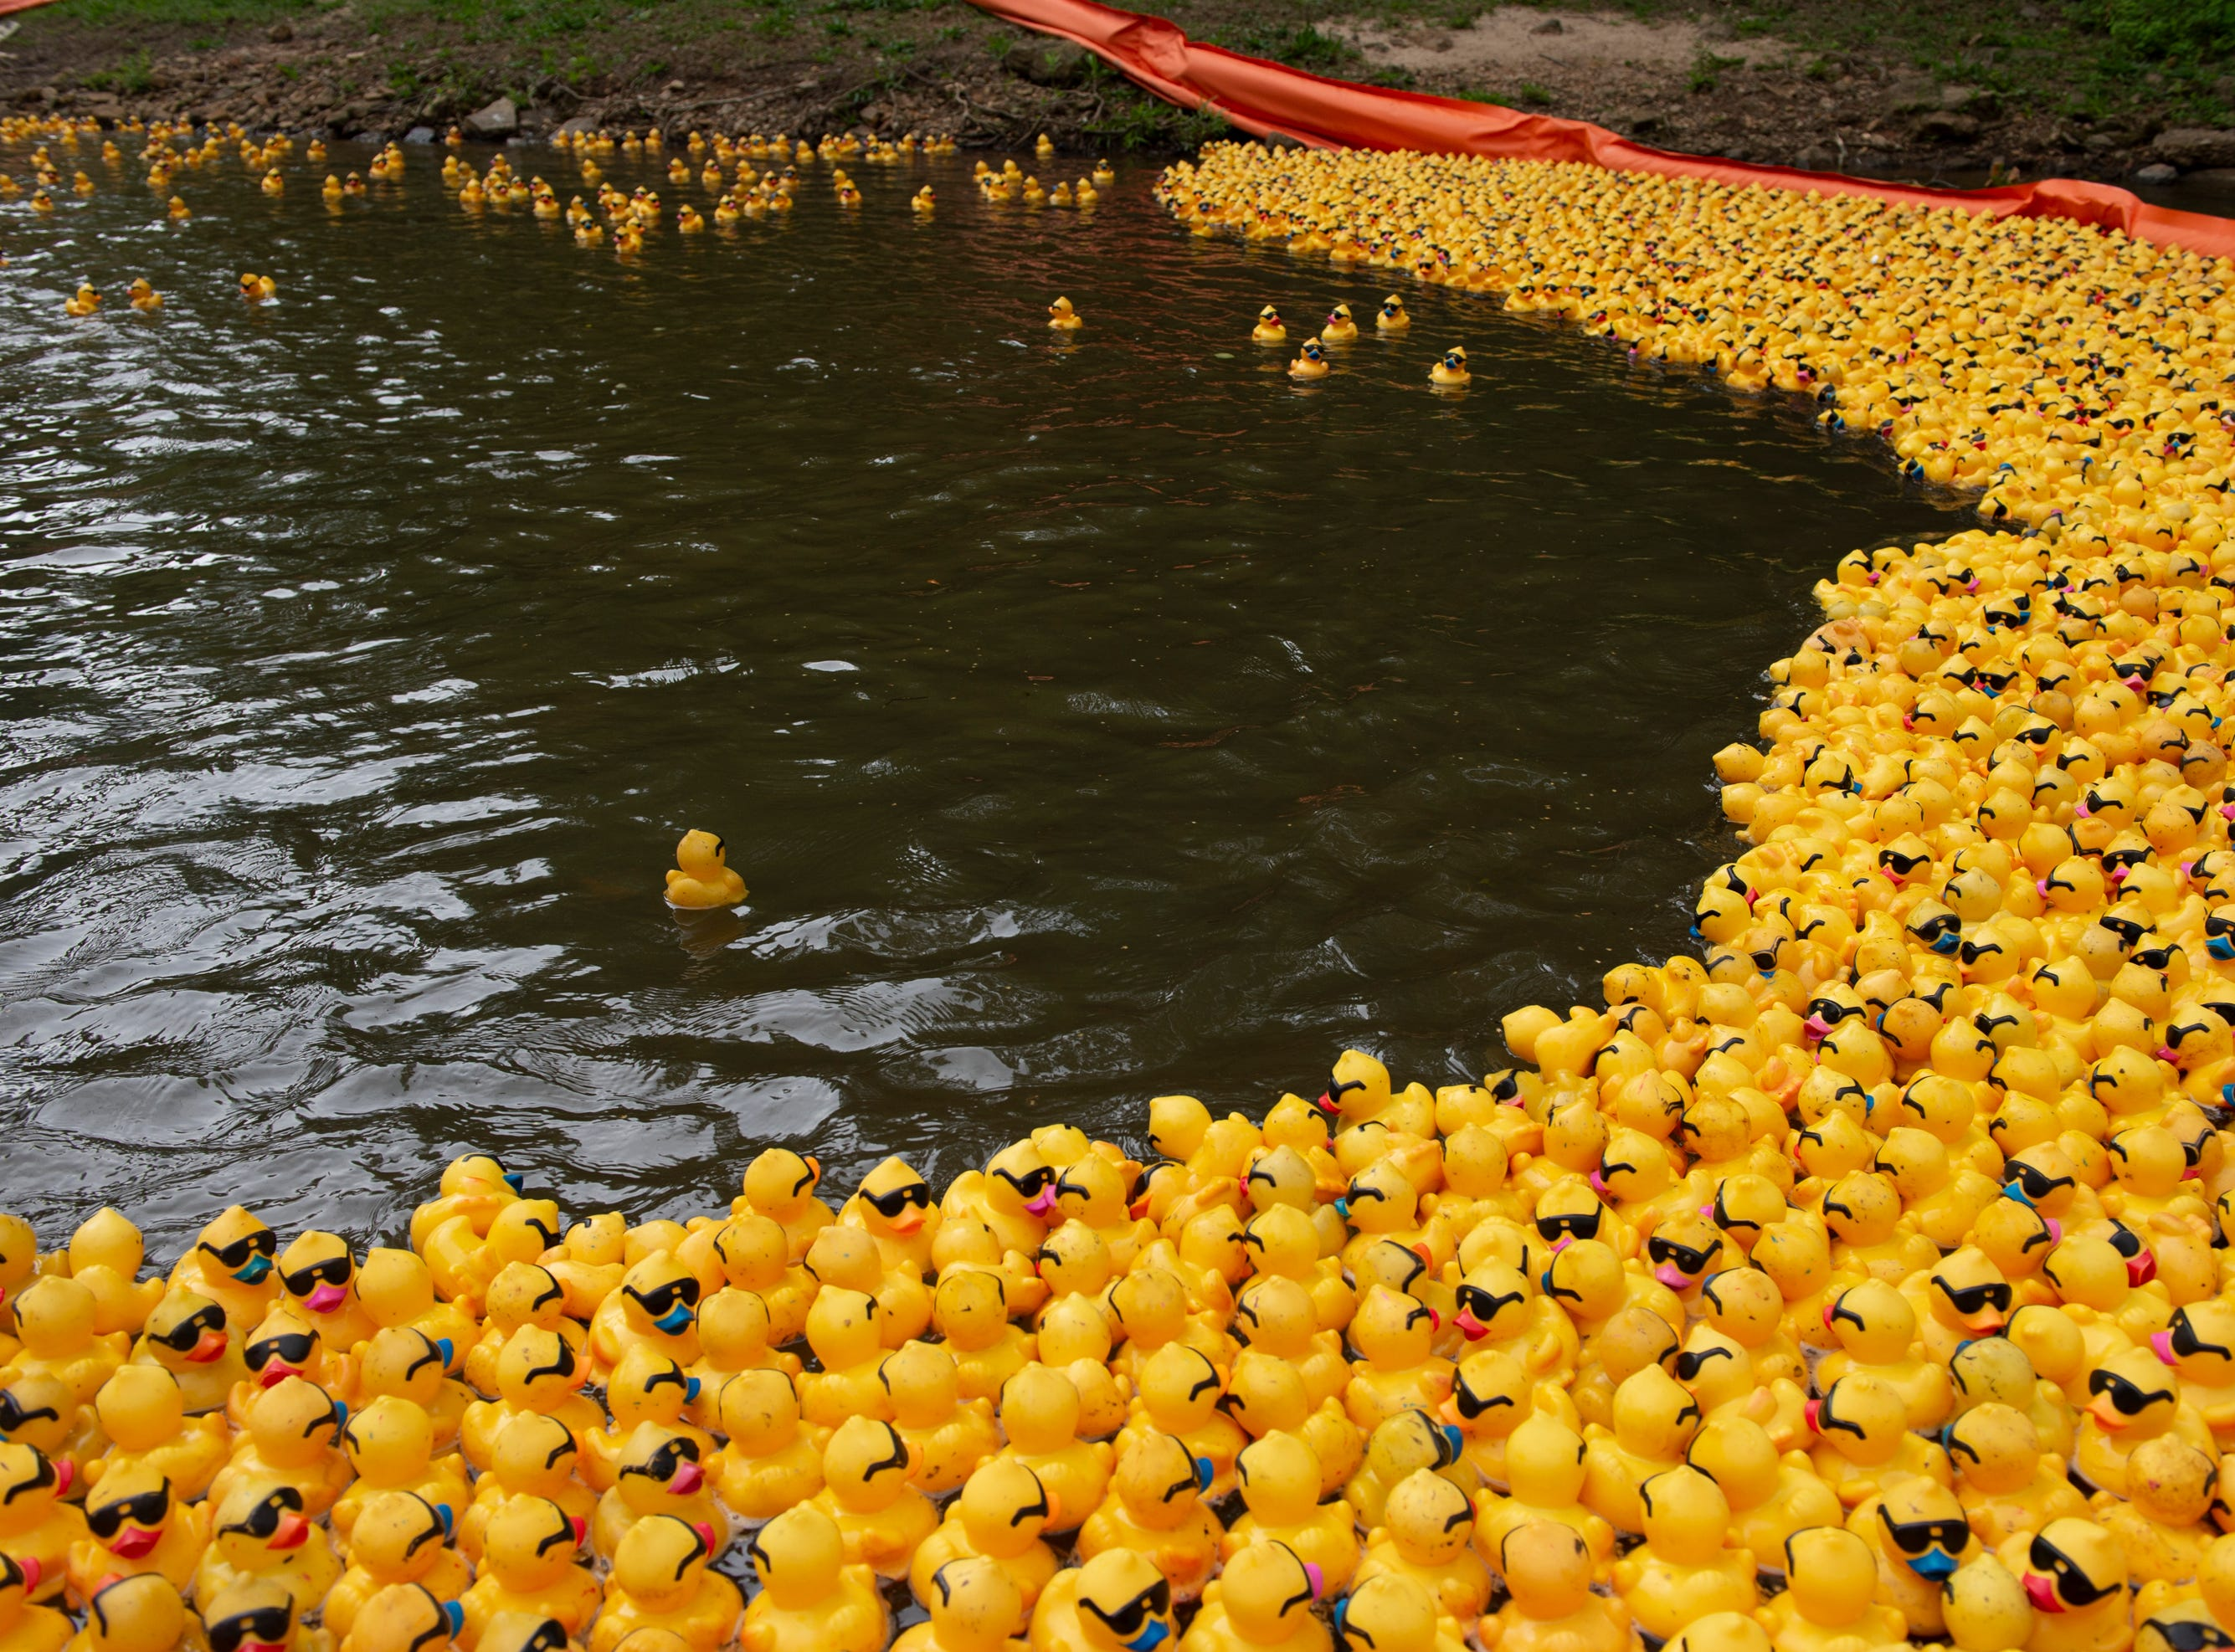 Ducks are corralled at the finish of the 2019 Reedy River Duck Derby in Falls Park on the Reedy Saturday, May 4, 2019.